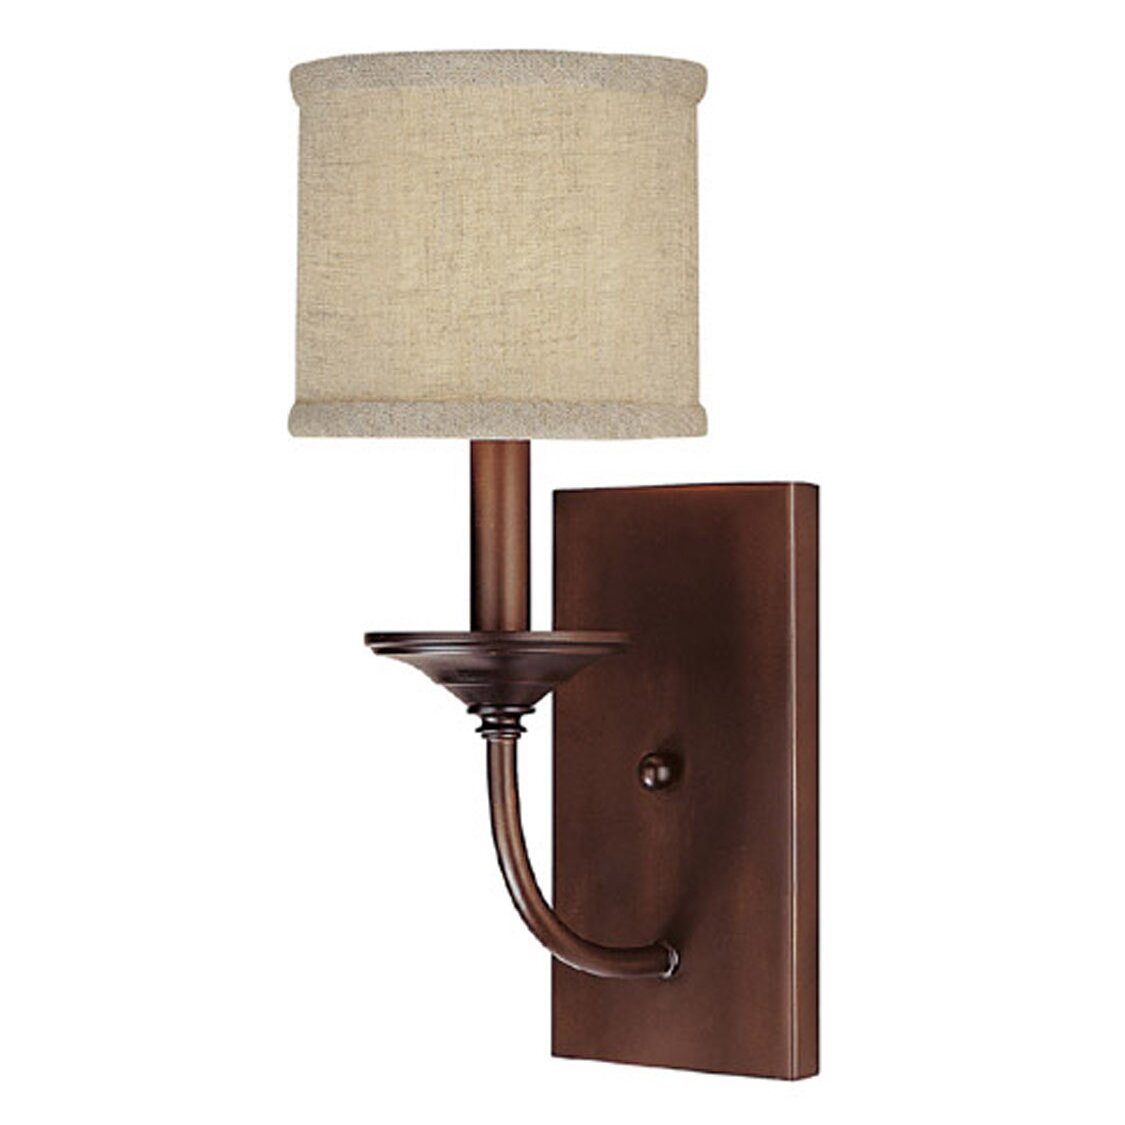 Wall Sconces At Wayfair : Three Posts Thorpe 1 Light Wall Sconce & Reviews Wayfair